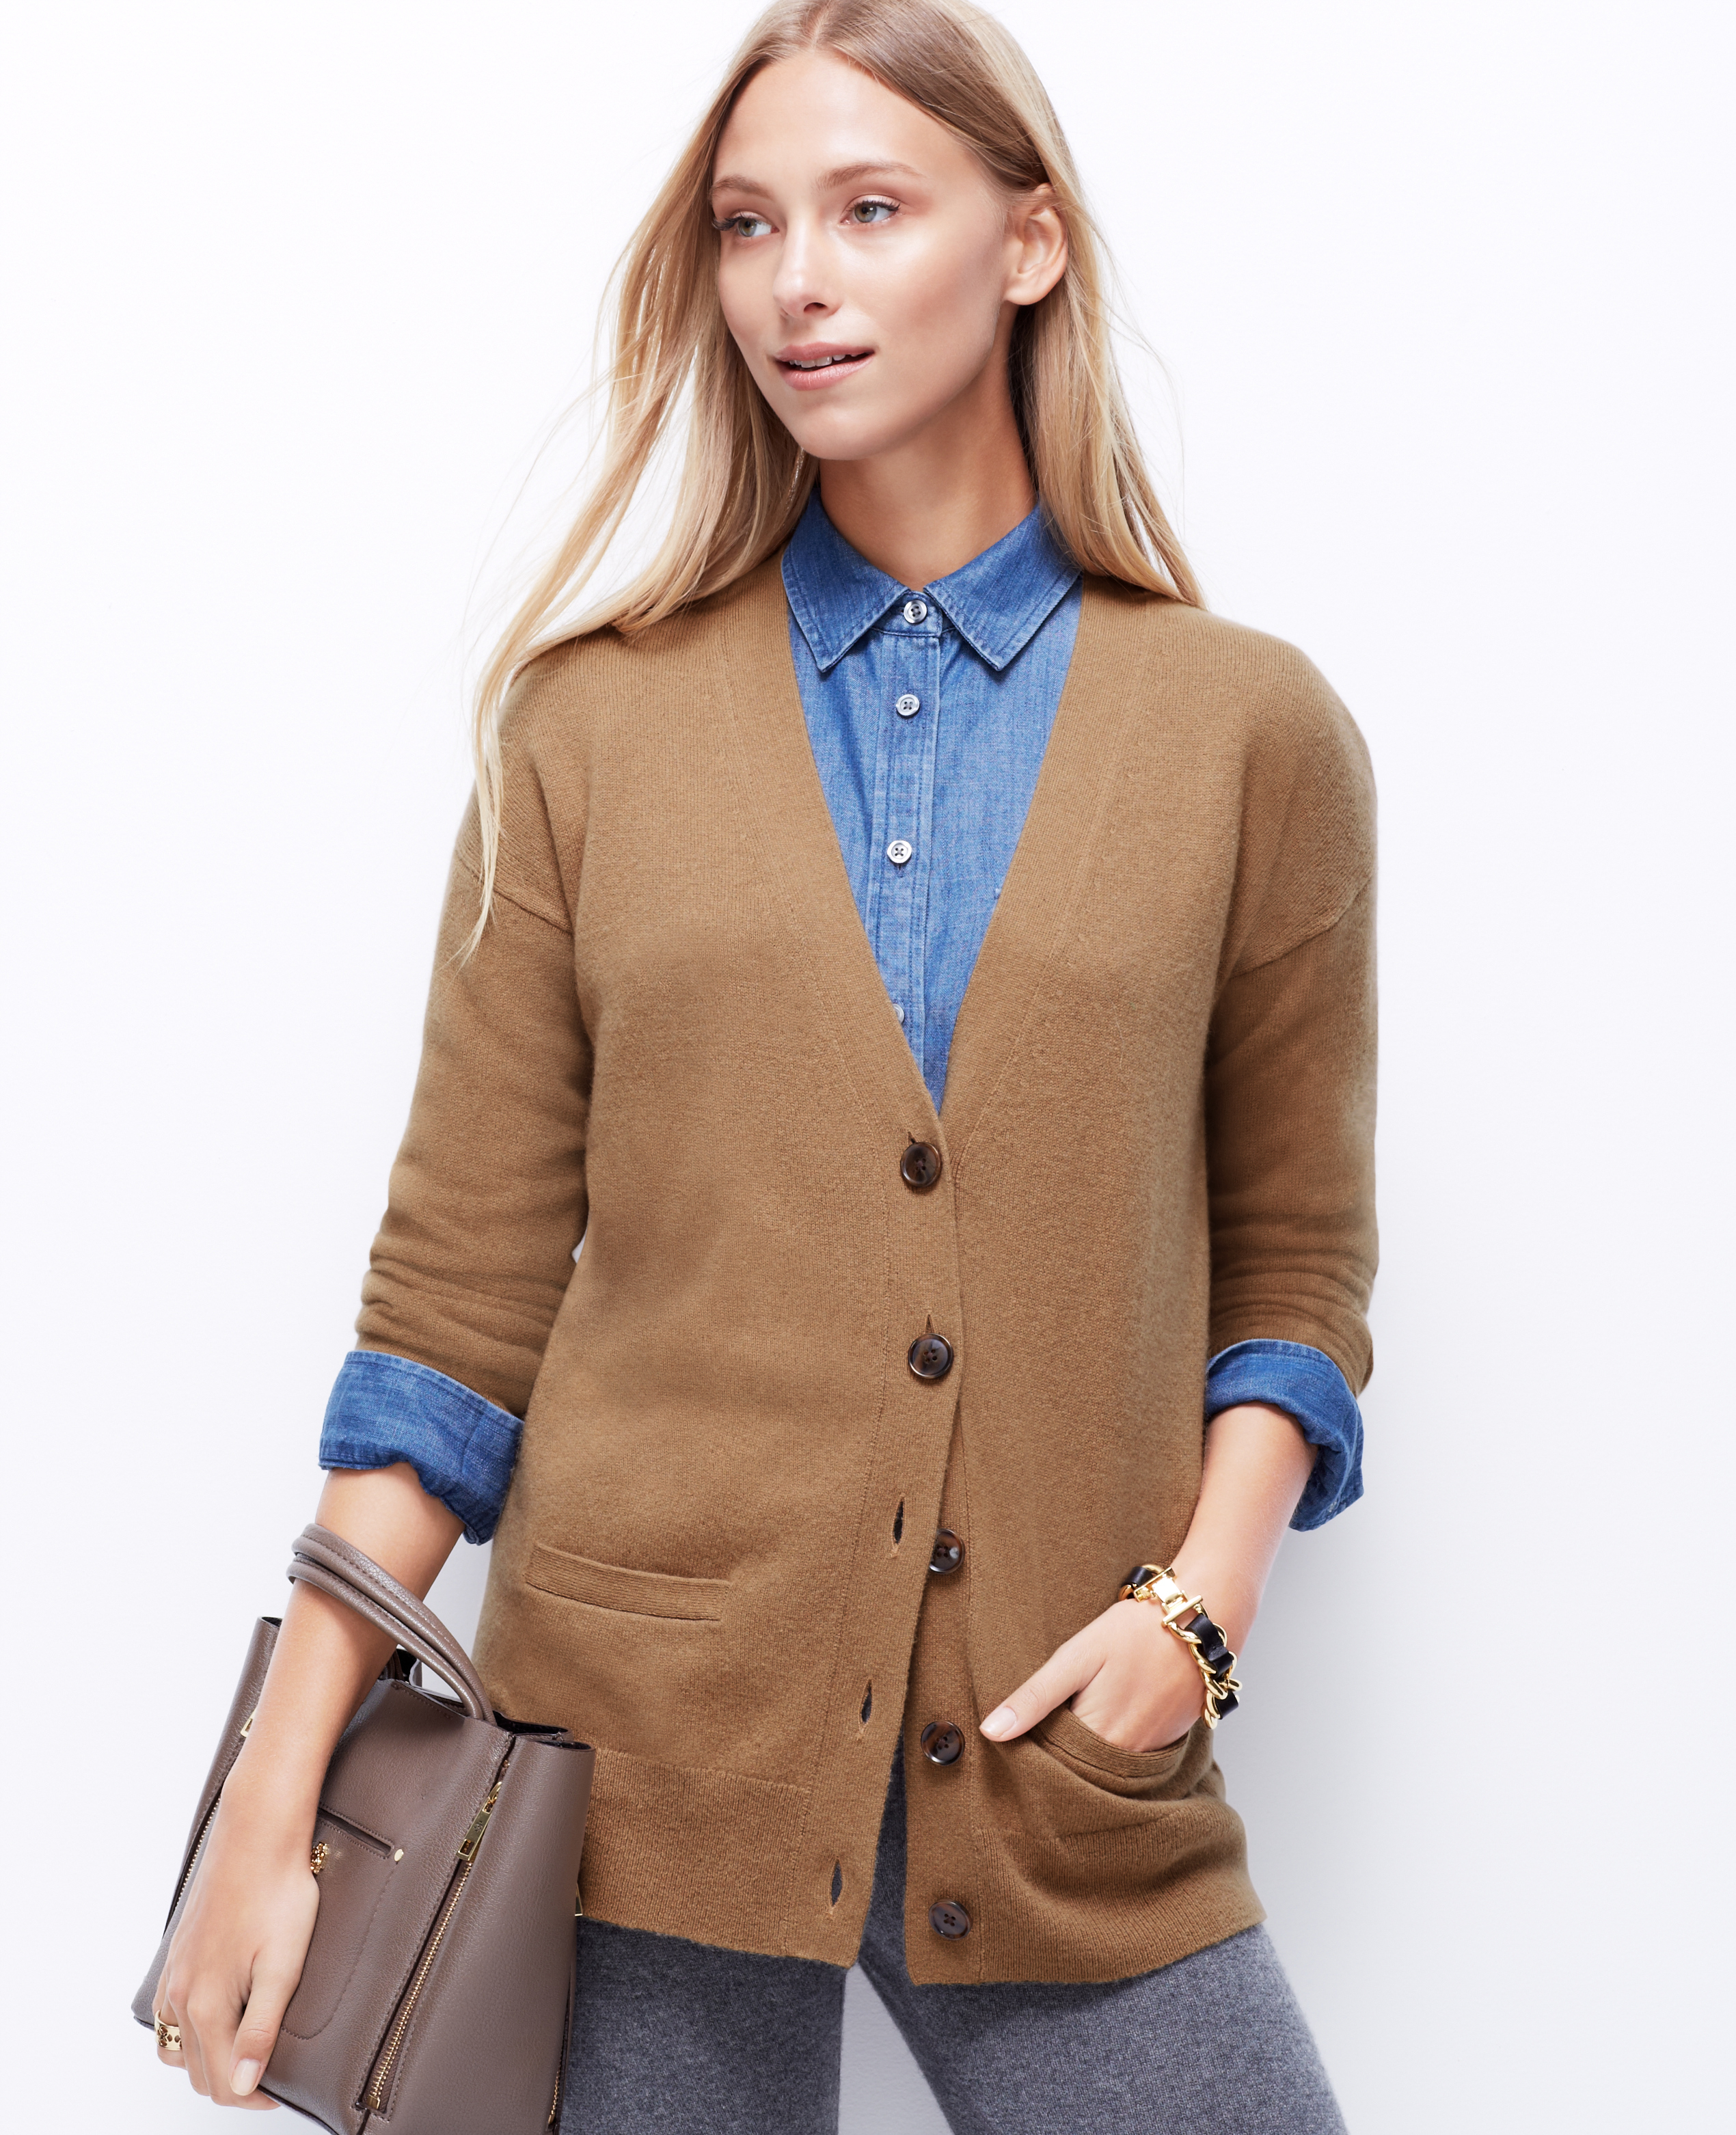 Ann taylor Cashmere Cardigan in Natural | Lyst